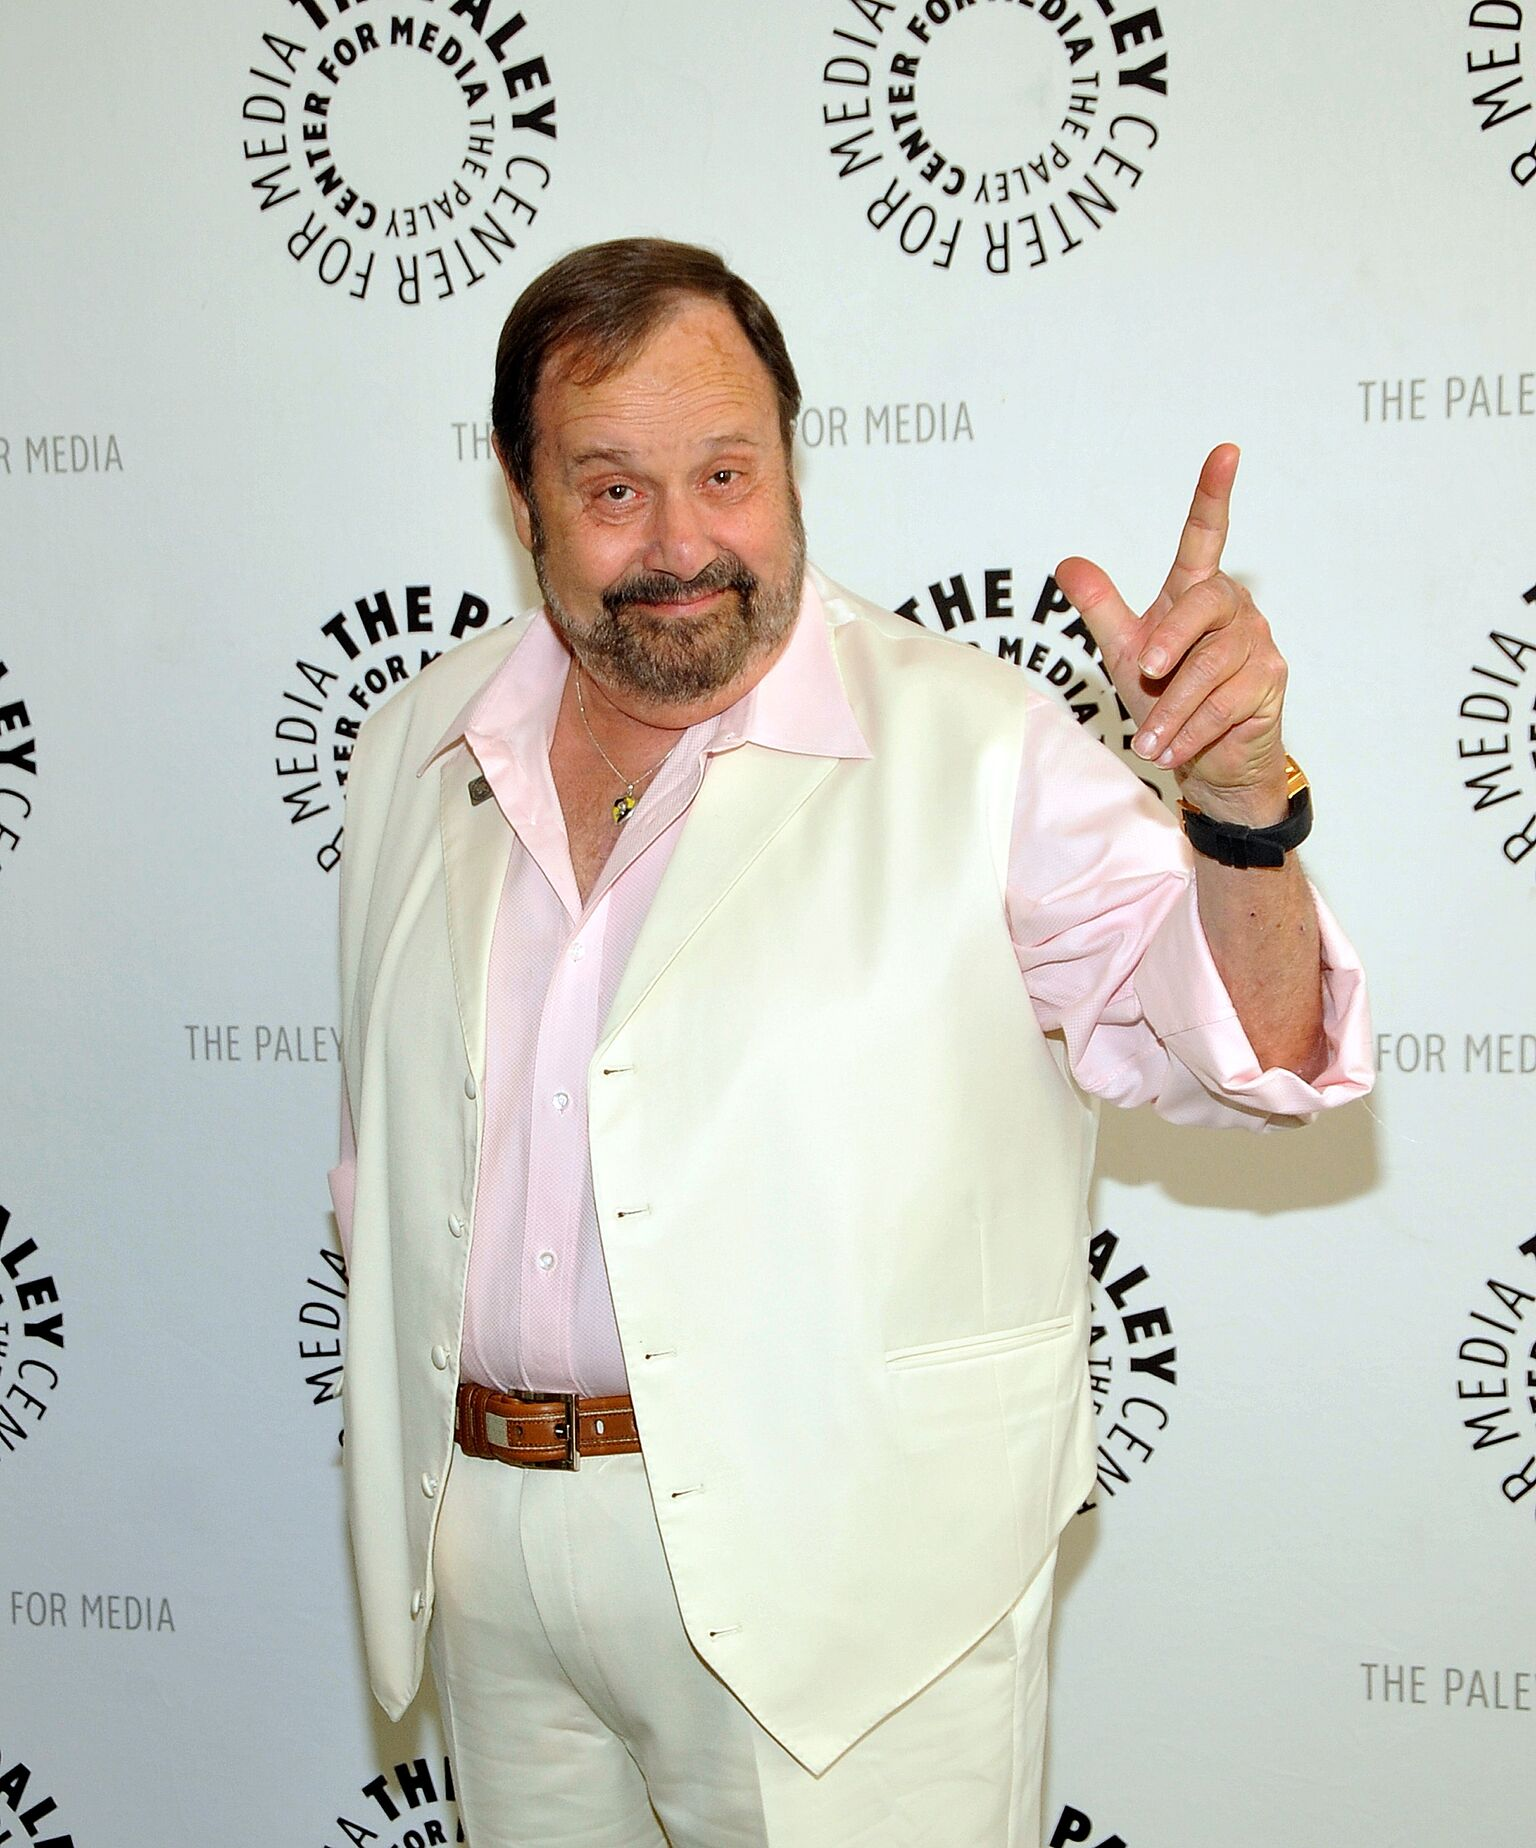 Frank Bank at the Paley Center For Media in Beverly Hills on June 21, 2010 in Beverly Hills, California | Photo: Getty Images